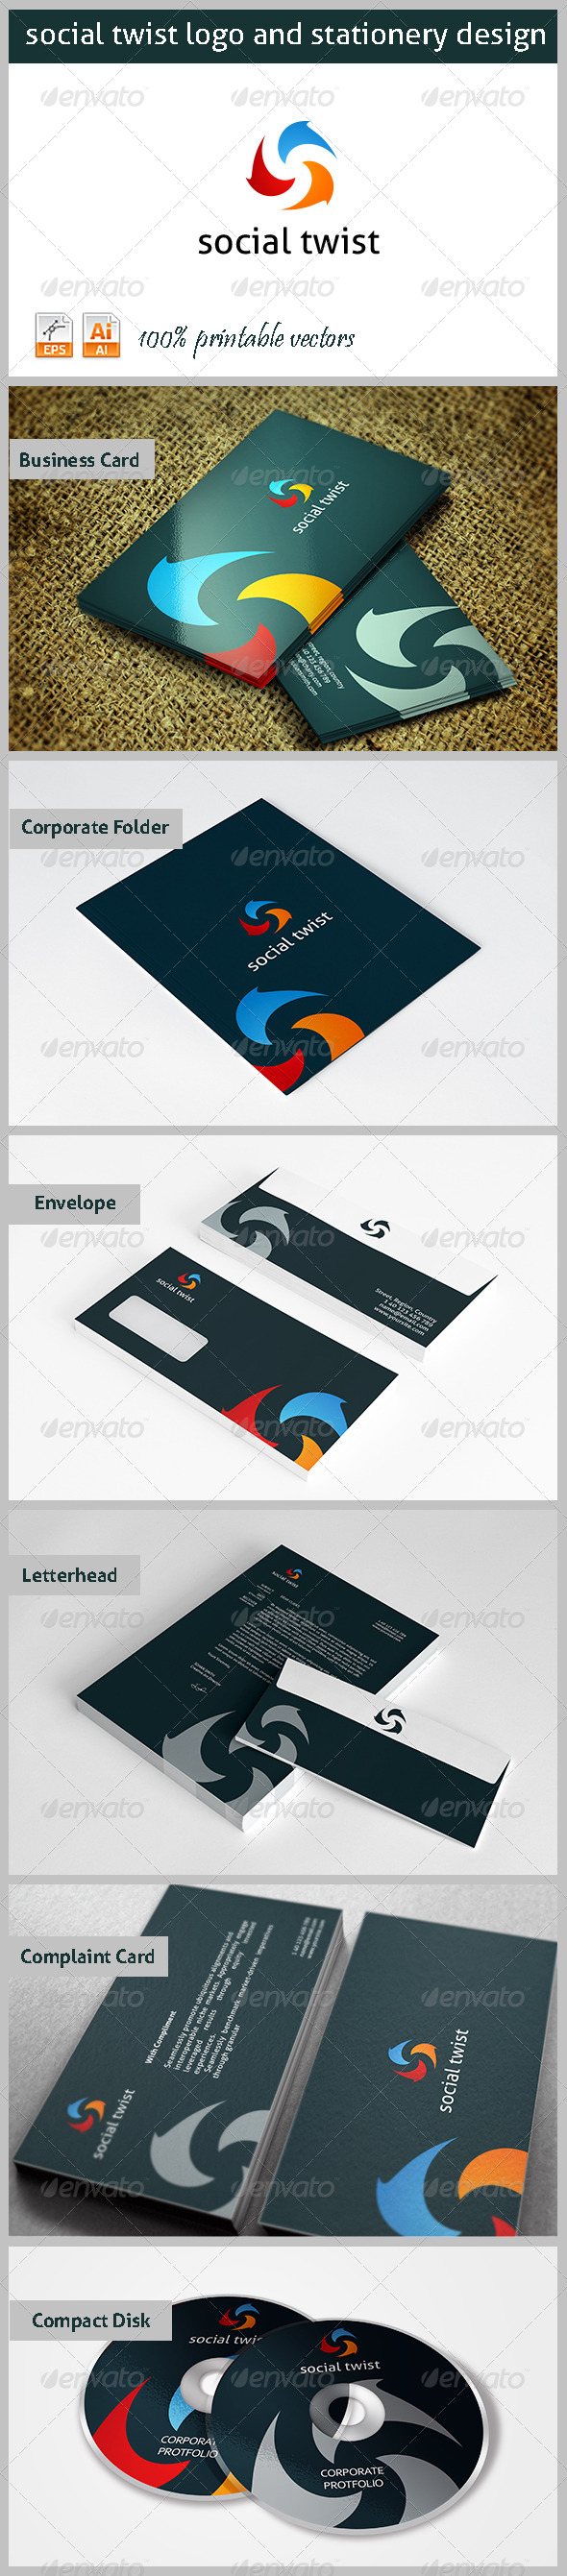 Social TwistLogo and Stationery - Stationery Print Templates